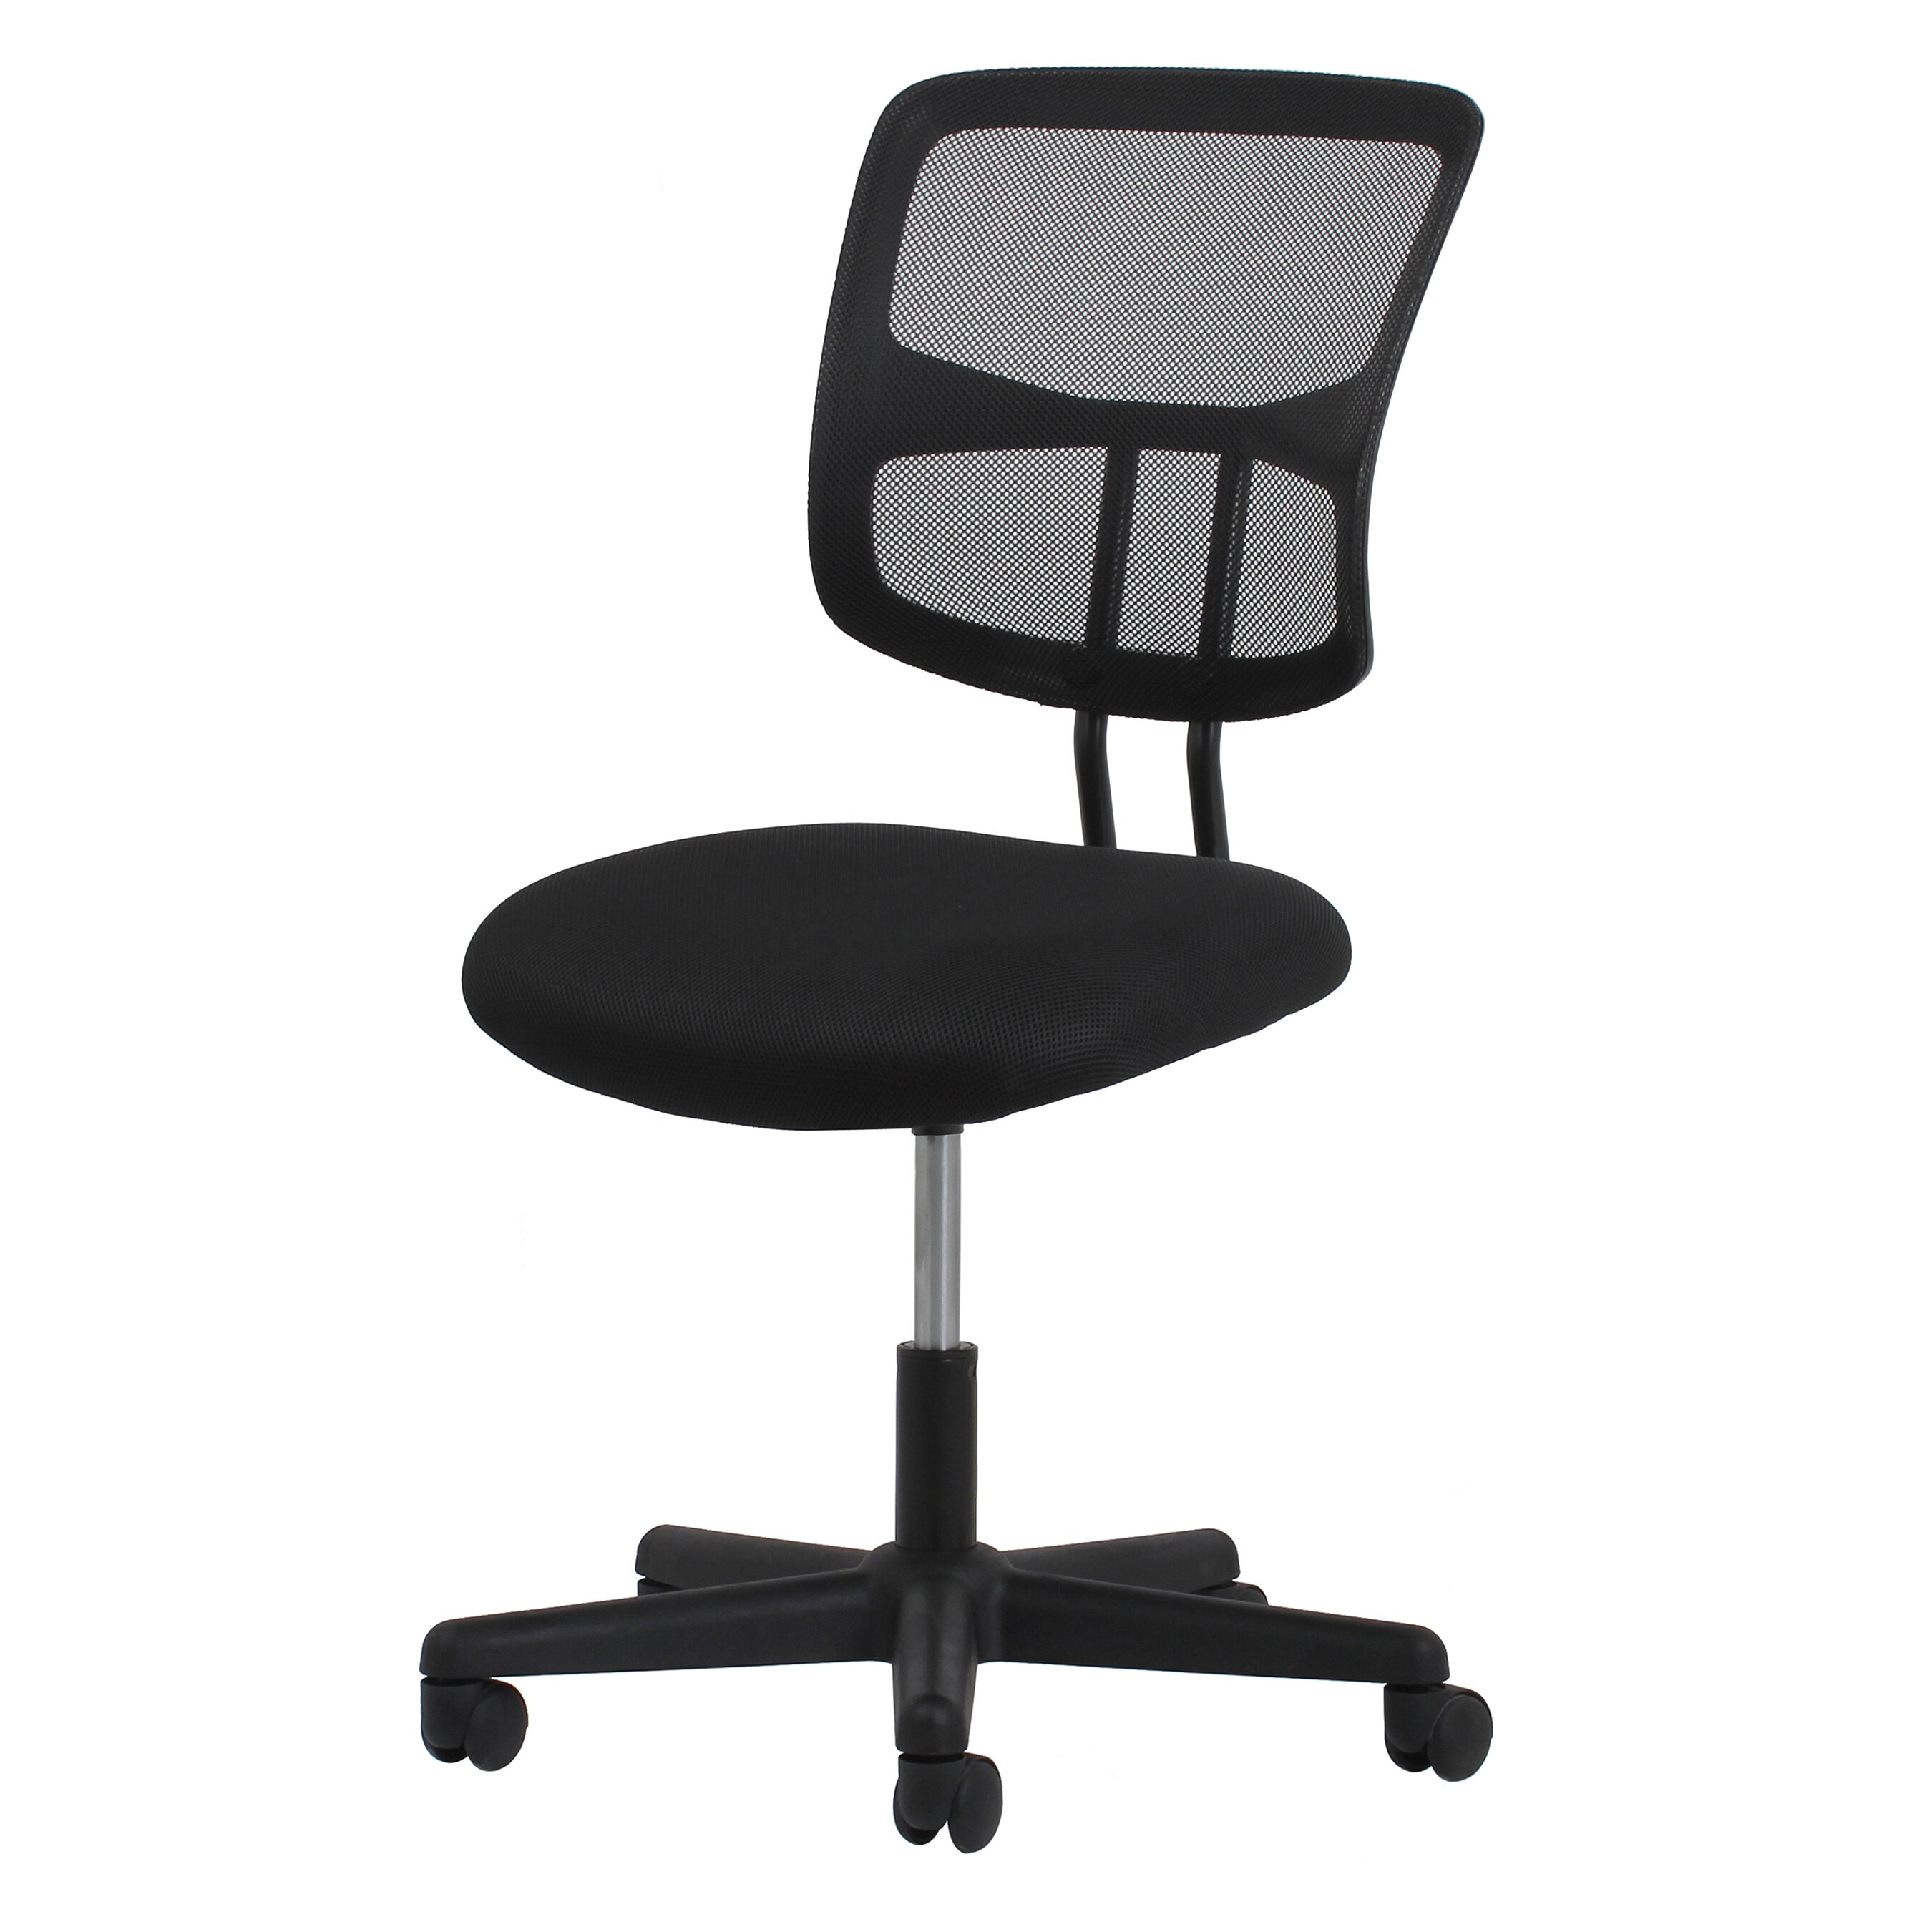 OFM Essentials Mesh Desk Chair